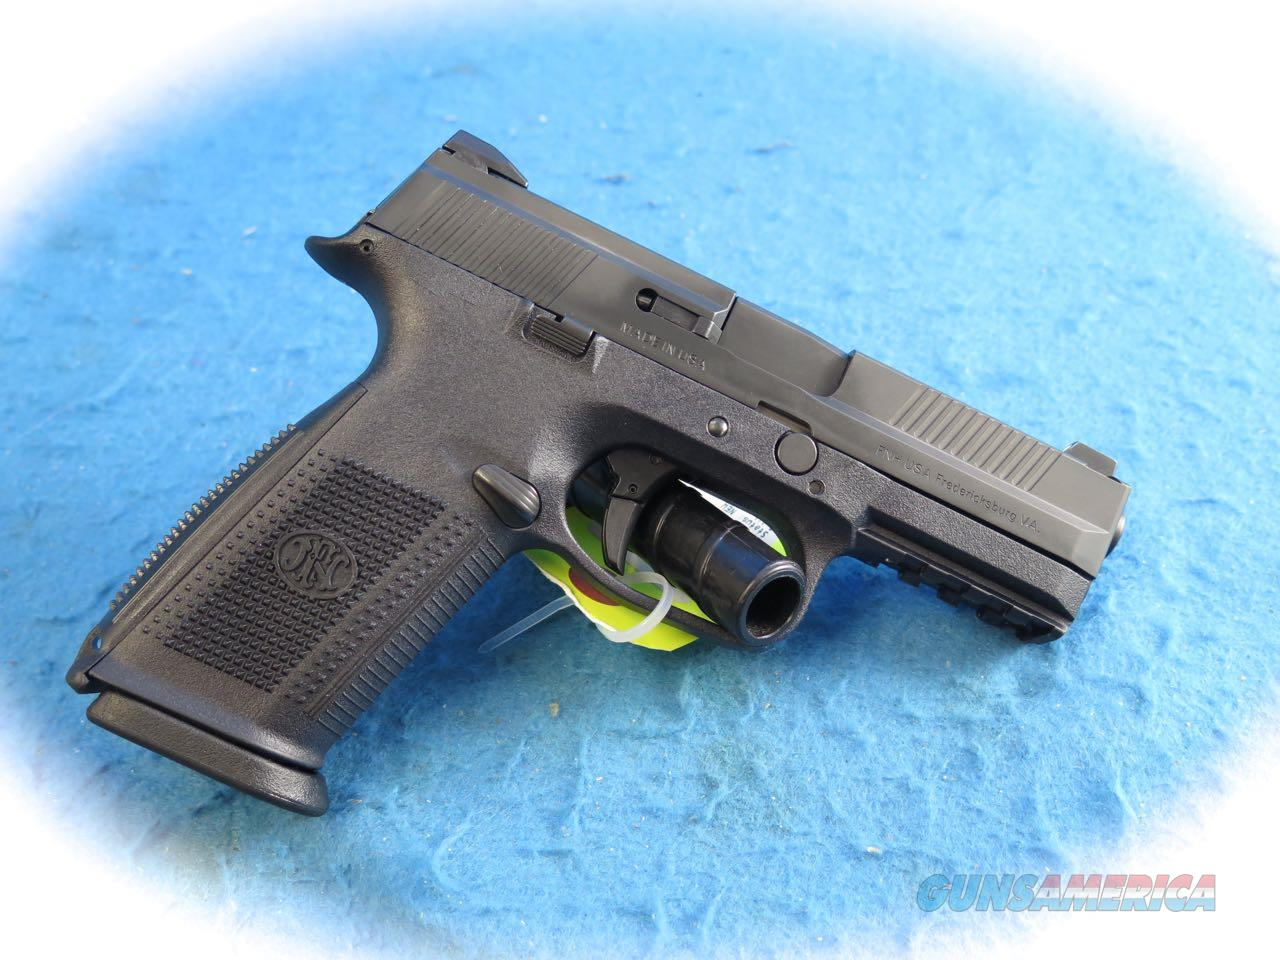 FNH Model FNS 9mm Pistol W/3 Mags **New**  Guns > Pistols > FNH - Fabrique Nationale (FN) Pistols > FNS